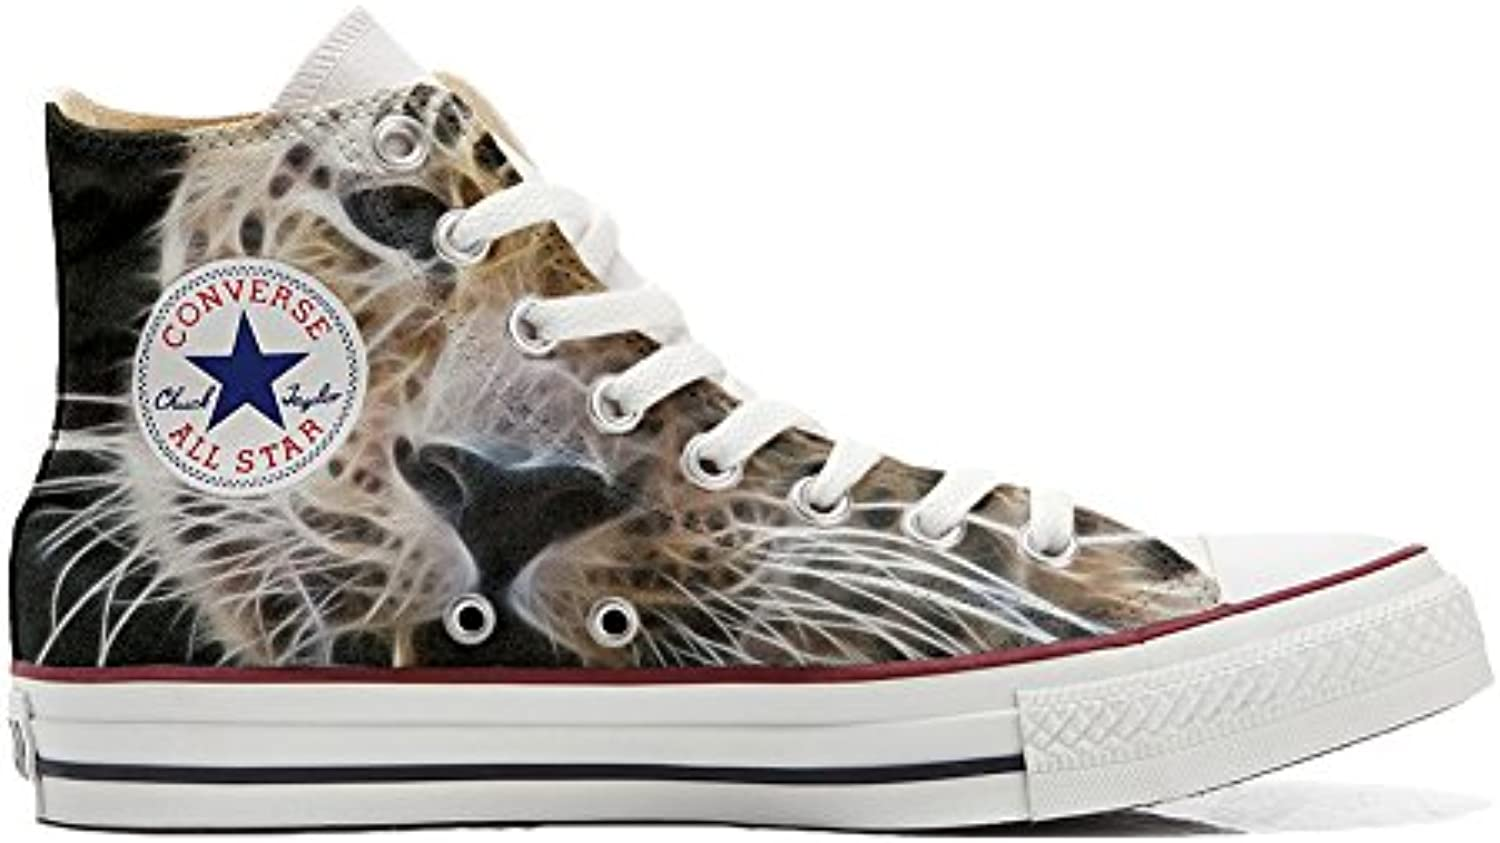 Schuhe Custom Converse All Star  Personalisierte Schuhe (Handwerk Produkt Customized) Tiger Style